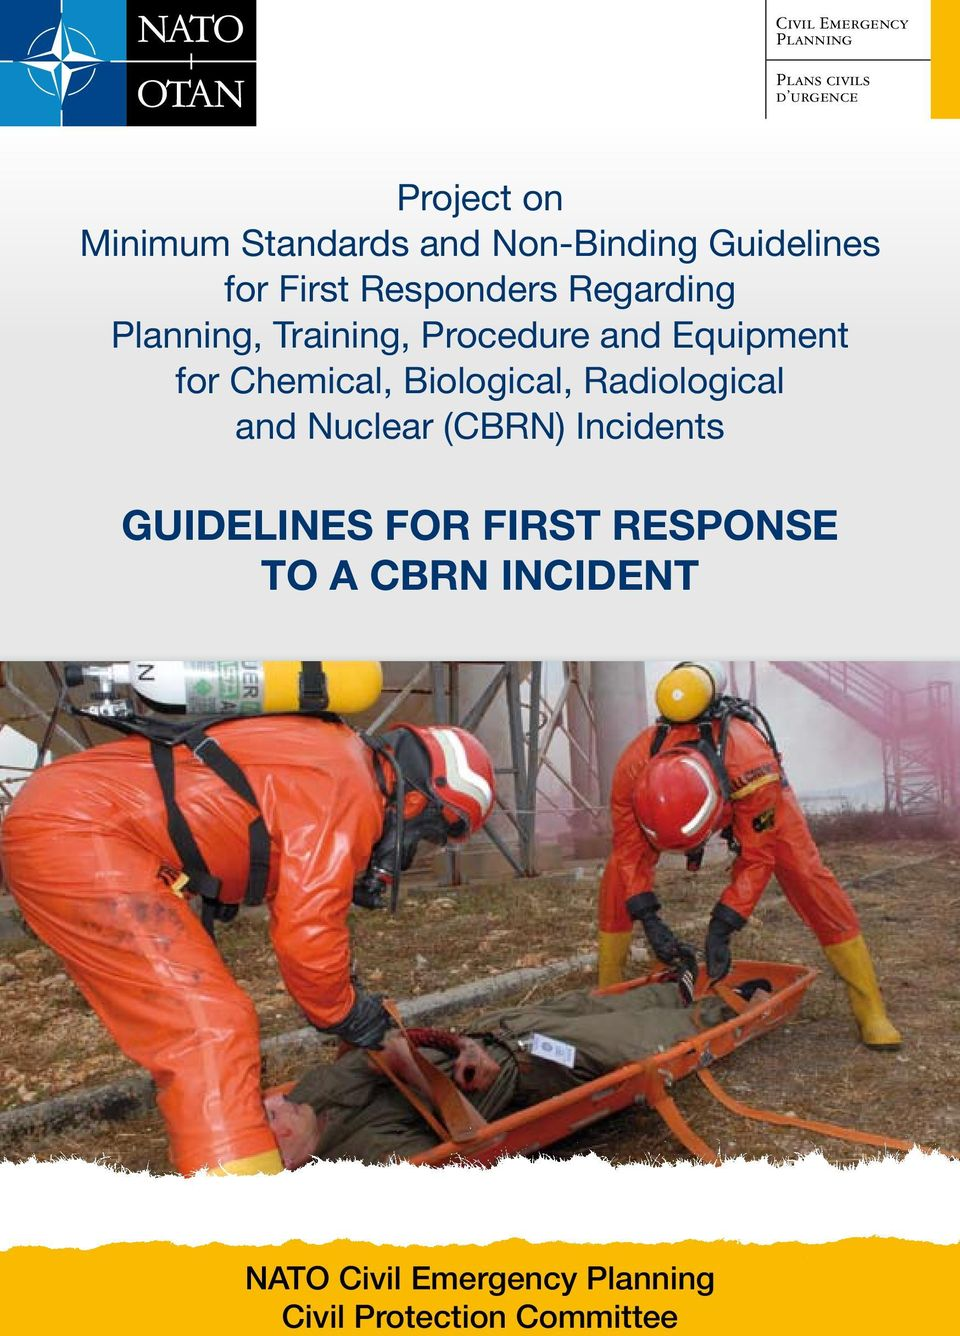 Equipment for Chemical, Biological, Radiological and Nuclear (CBRN) Incidents